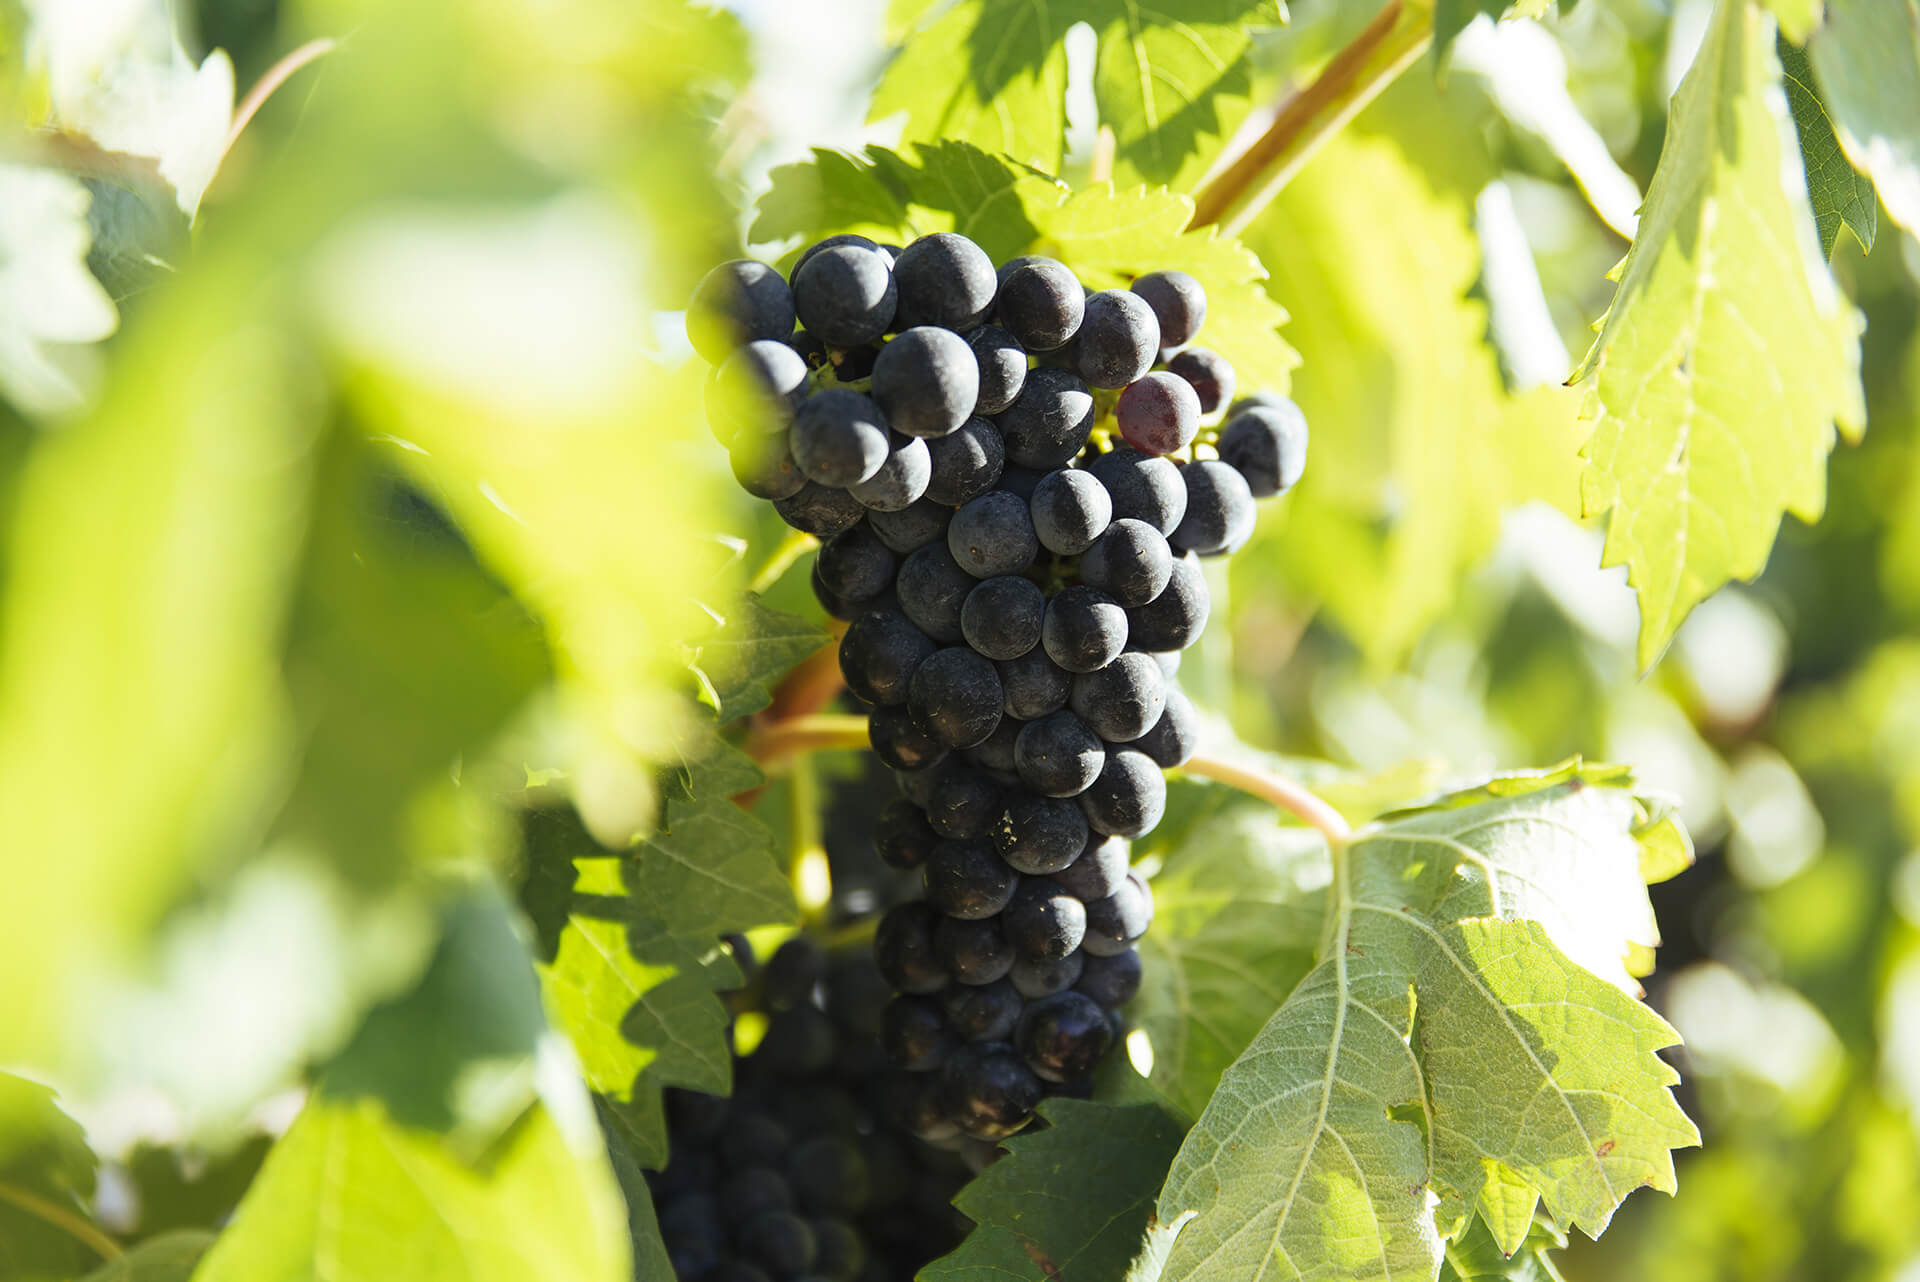 Ripening status report No. 4: closely monitor vineyards after rainfall